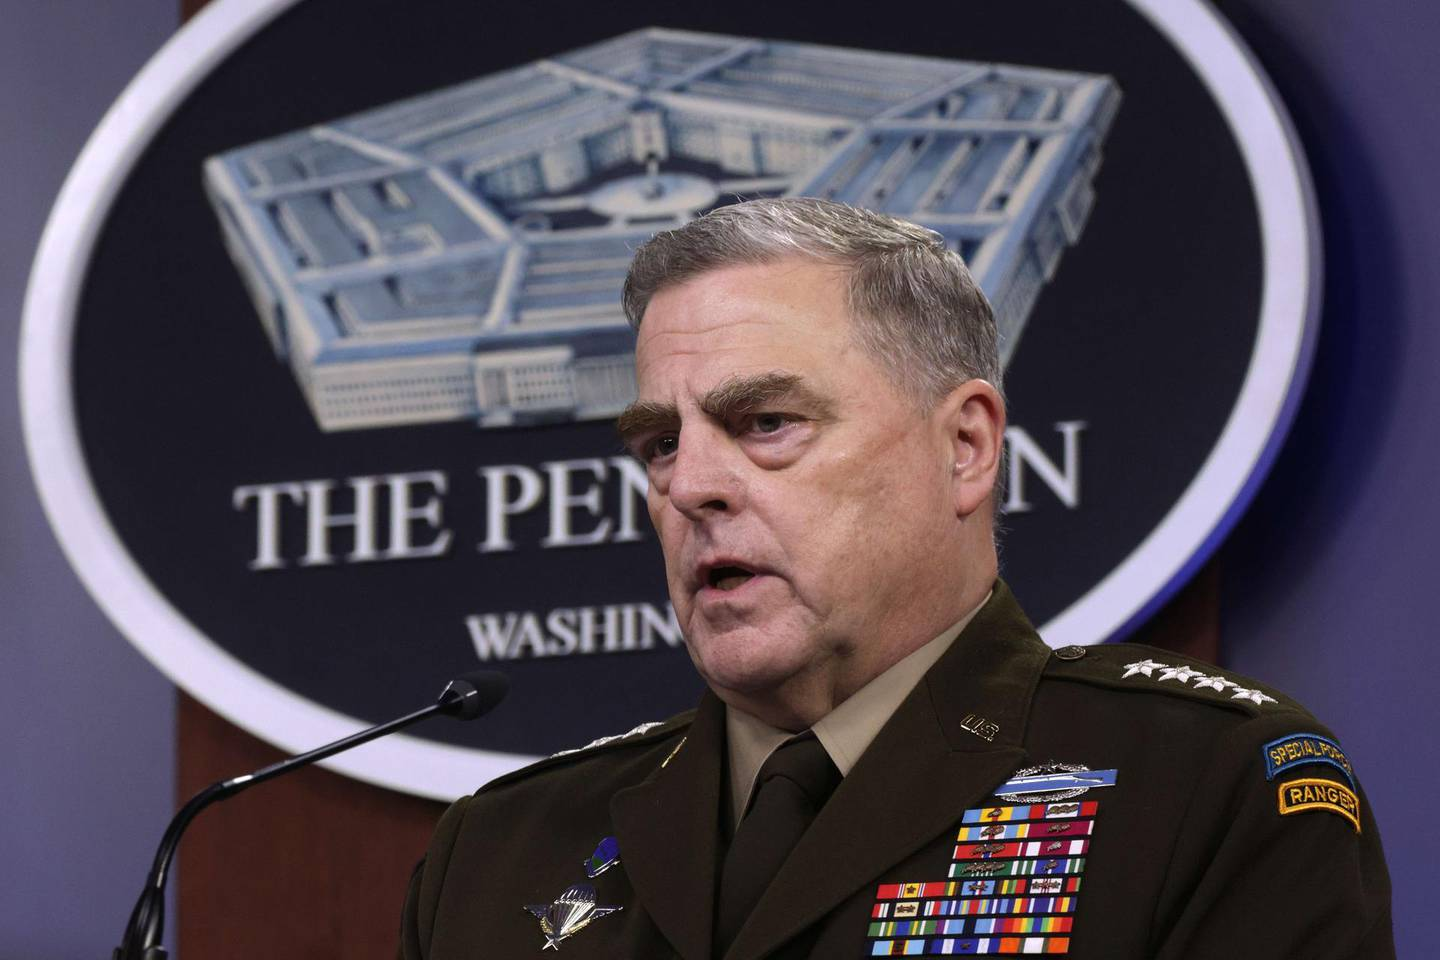 ARLINGTON, VIRGINIA - MAY 06: U.S. Chairman of the Joint Chiefs of Staff General. Mark Milley participates in a news briefing at the Pentagon May 6, 2021 in Arlington, Virginia. Secretary of Defense Lloyd Austin and General Milley held the briefing to answer questions from members of the media.   Alex Wong/Getty Images/AFP == FOR NEWSPAPERS, INTERNET, TELCOS & TELEVISION USE ONLY ==